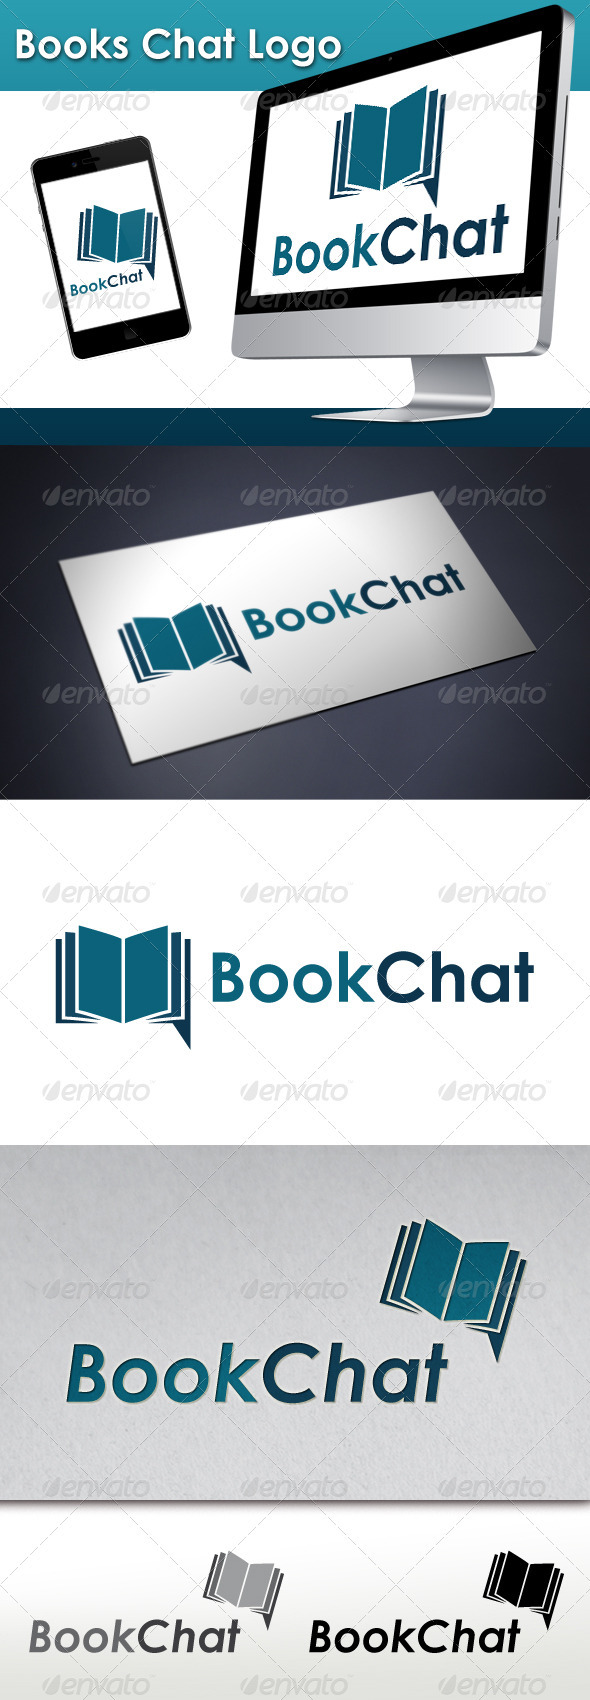 GraphicRiver Books Chat Logo 3402408